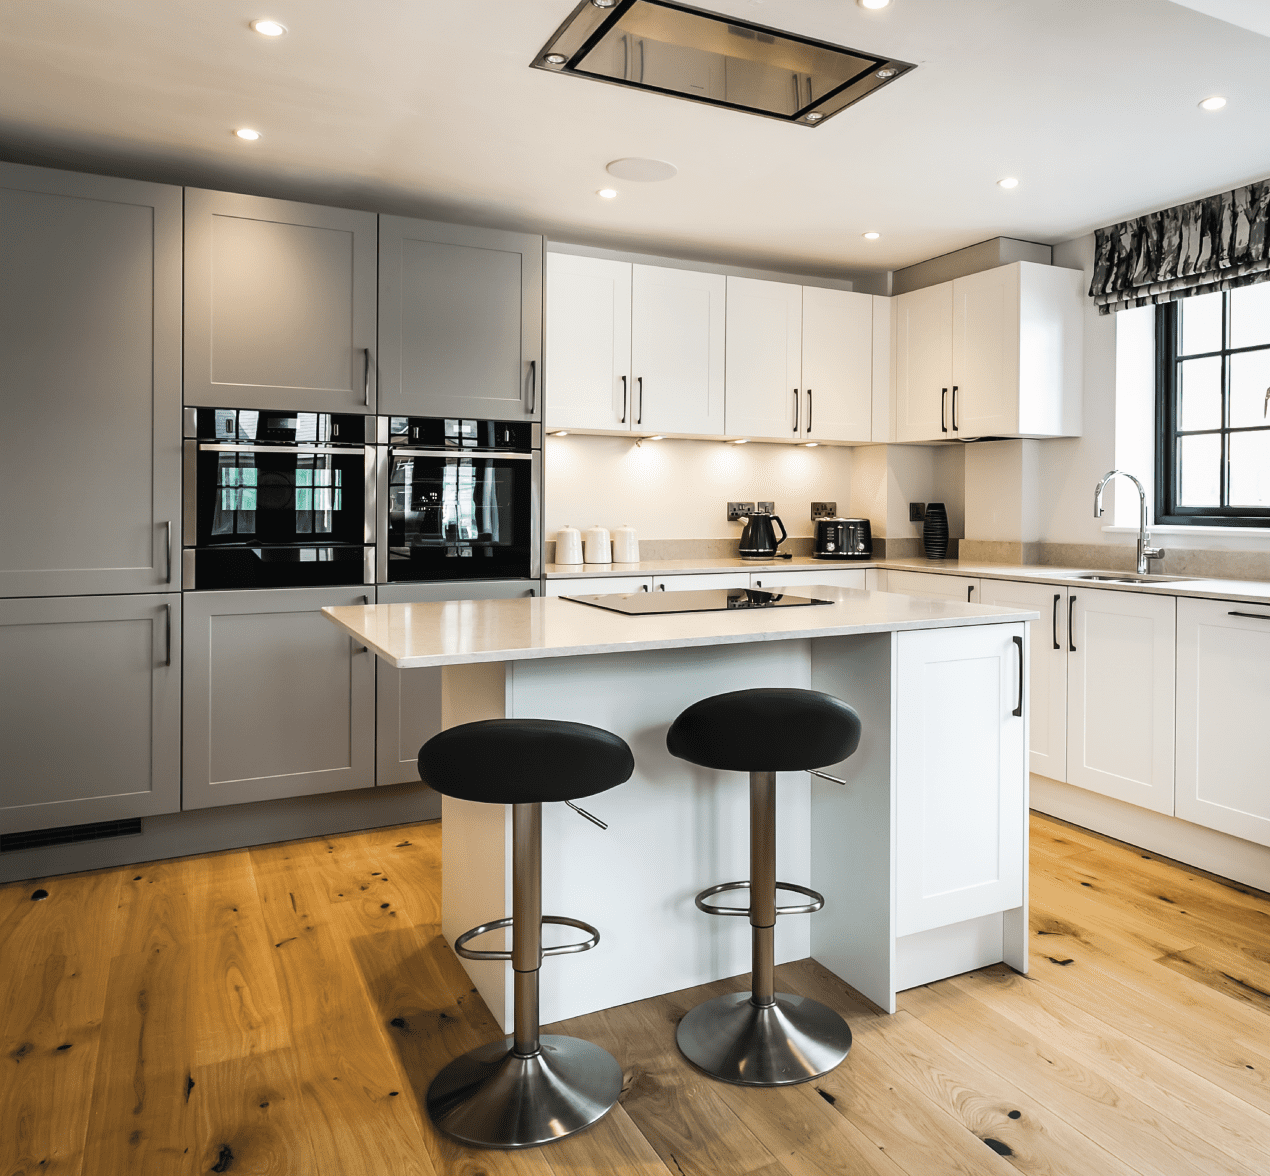 Kitchen Design Centre working with award winning property developer